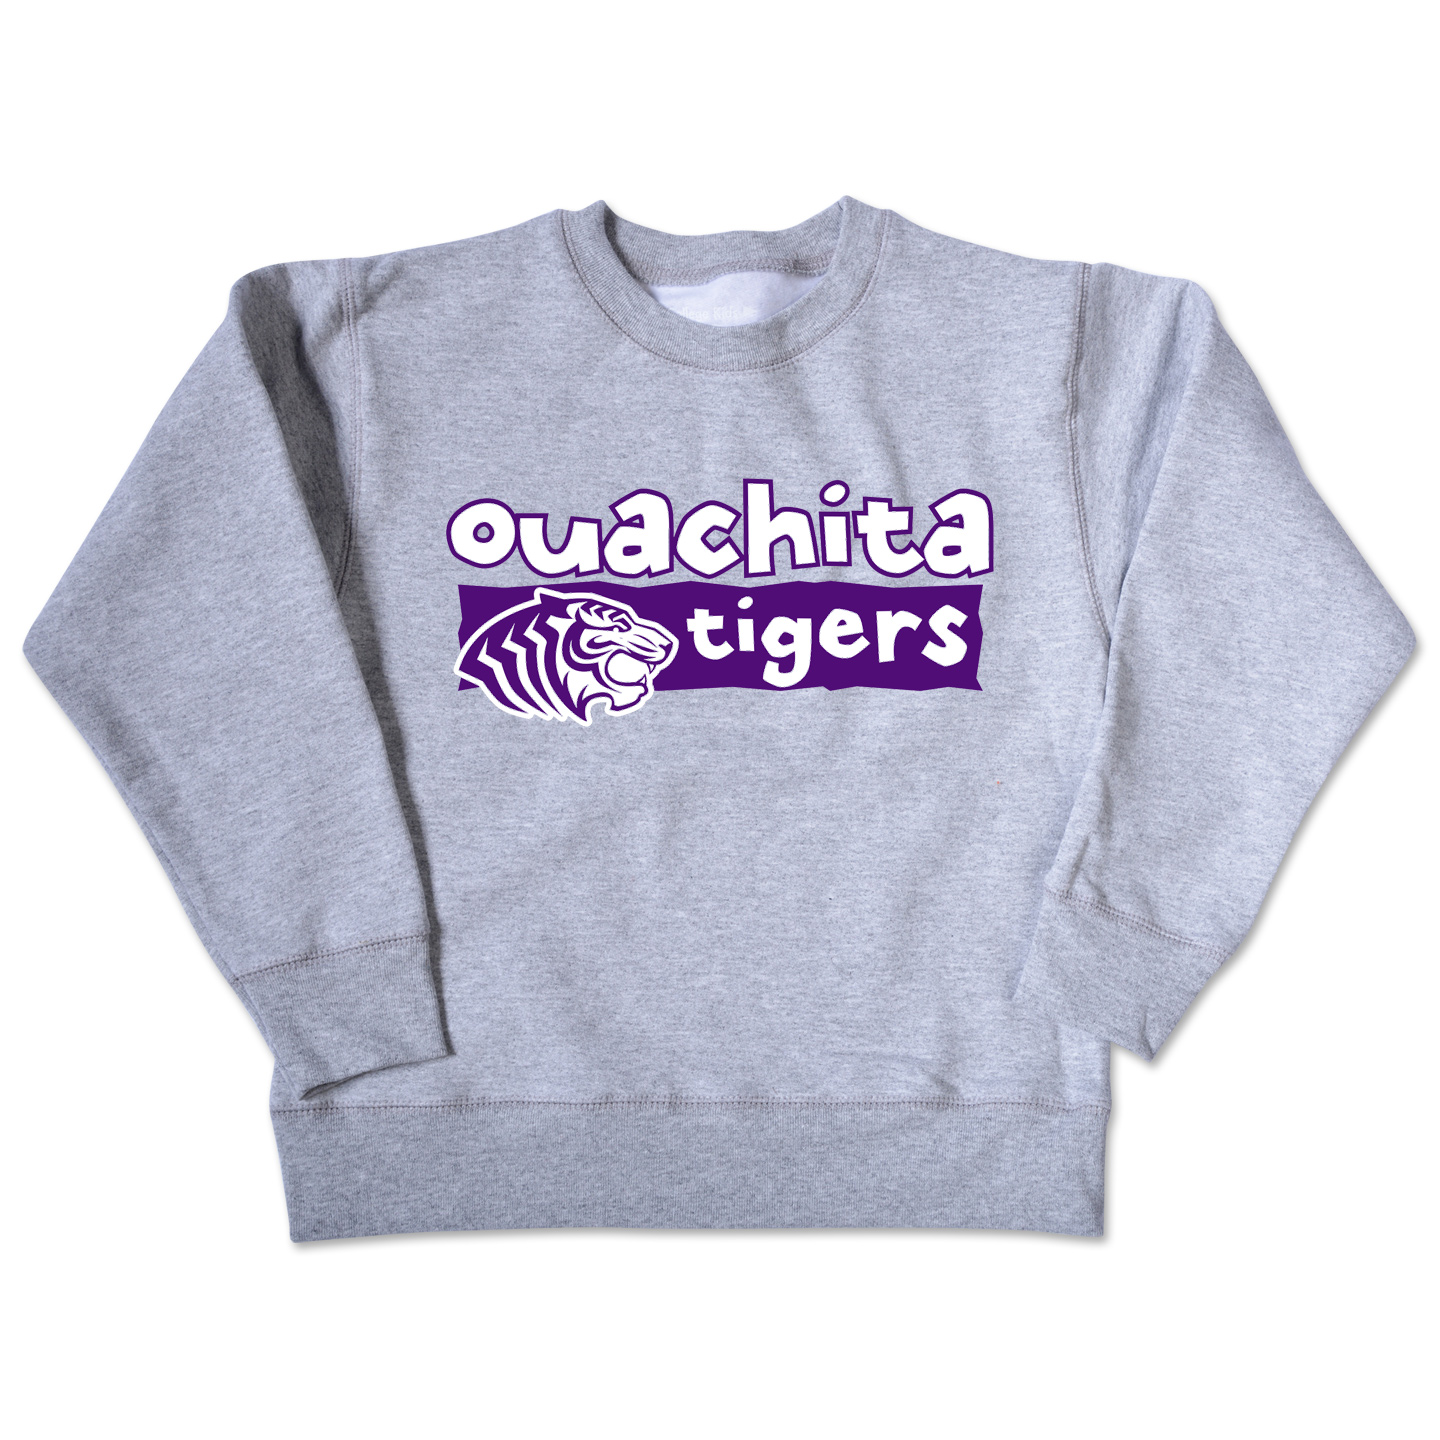 image of: OUACHITA TIGERS YOUTH CREW